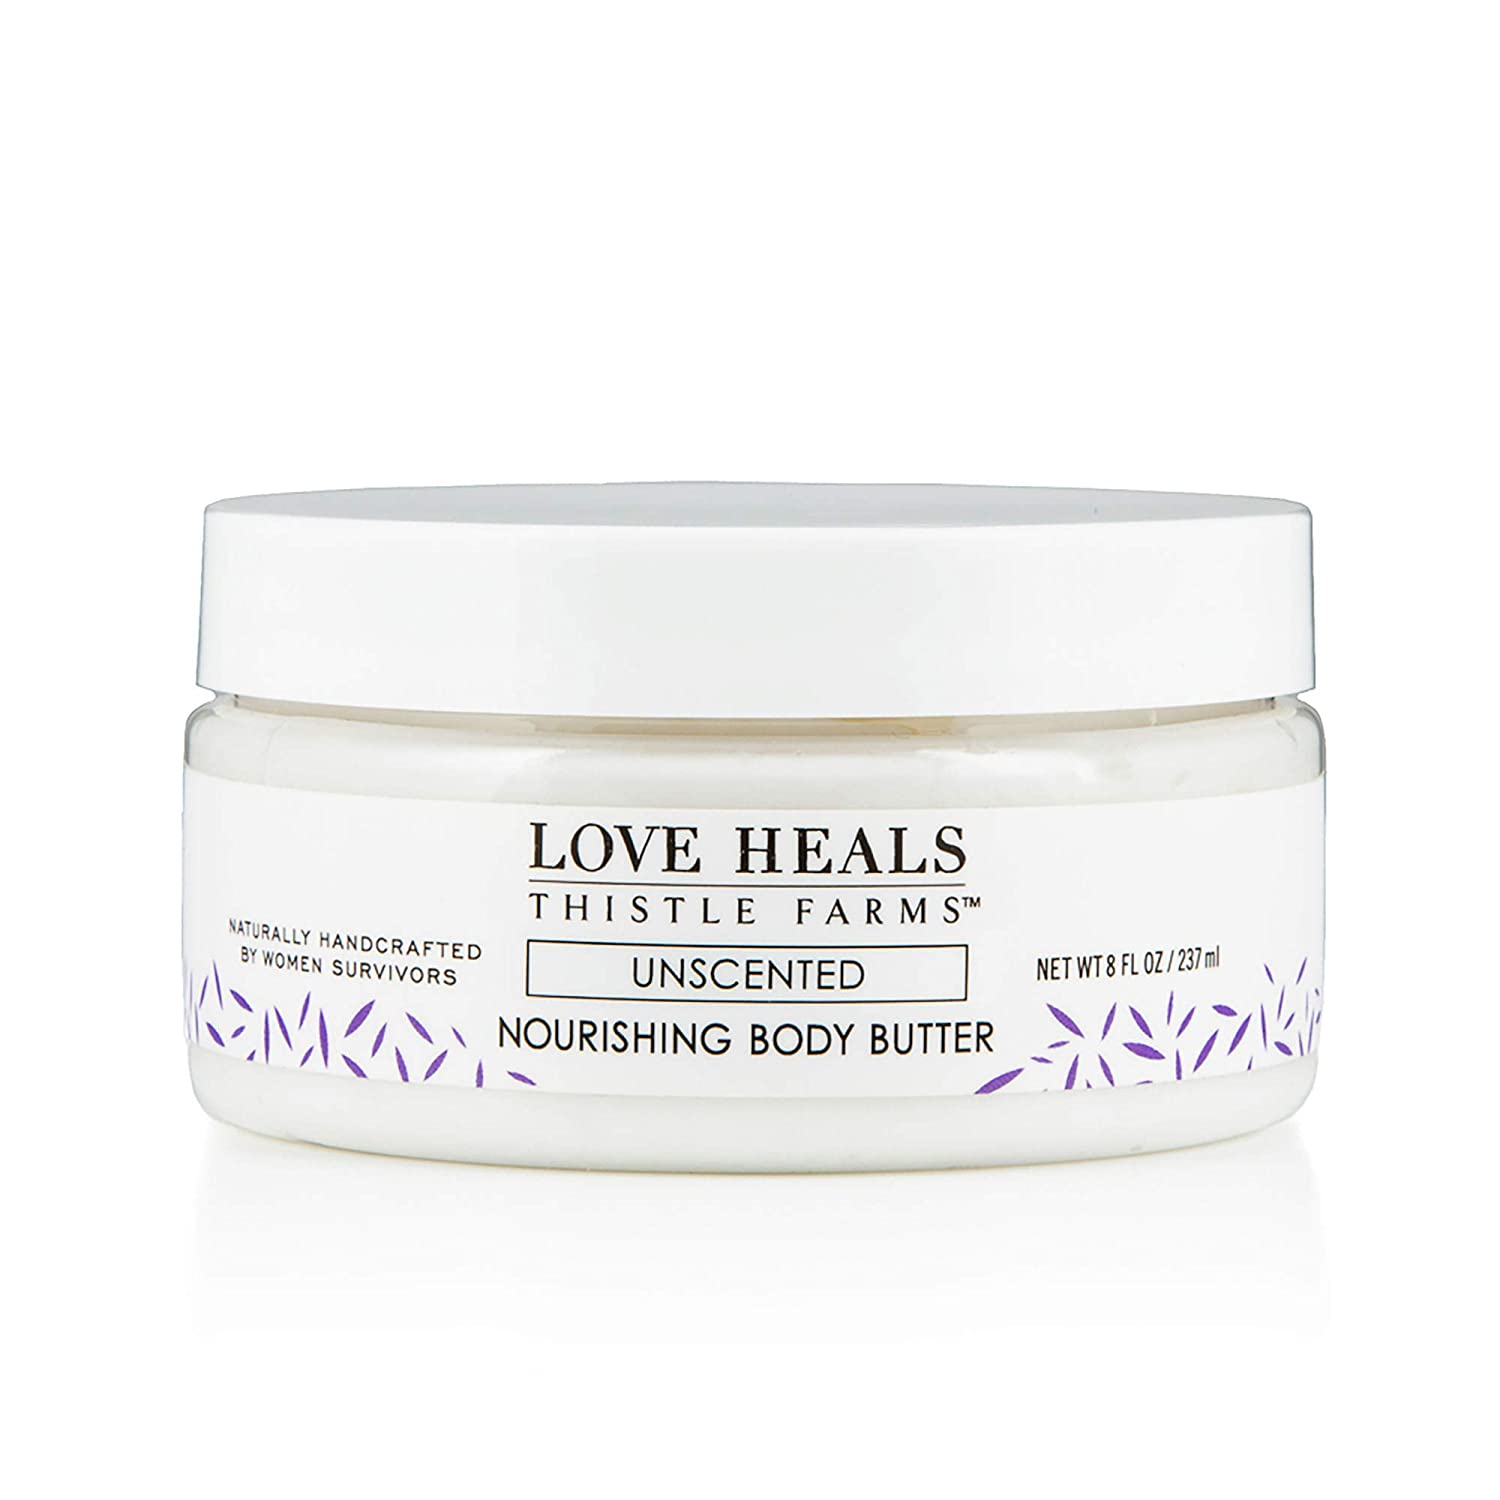 Thistle Farms | Nourishing Body Butter | Moisturizing Cream Whipped with Organic Coconut Oil handmade by Women Survivors (Unscented)